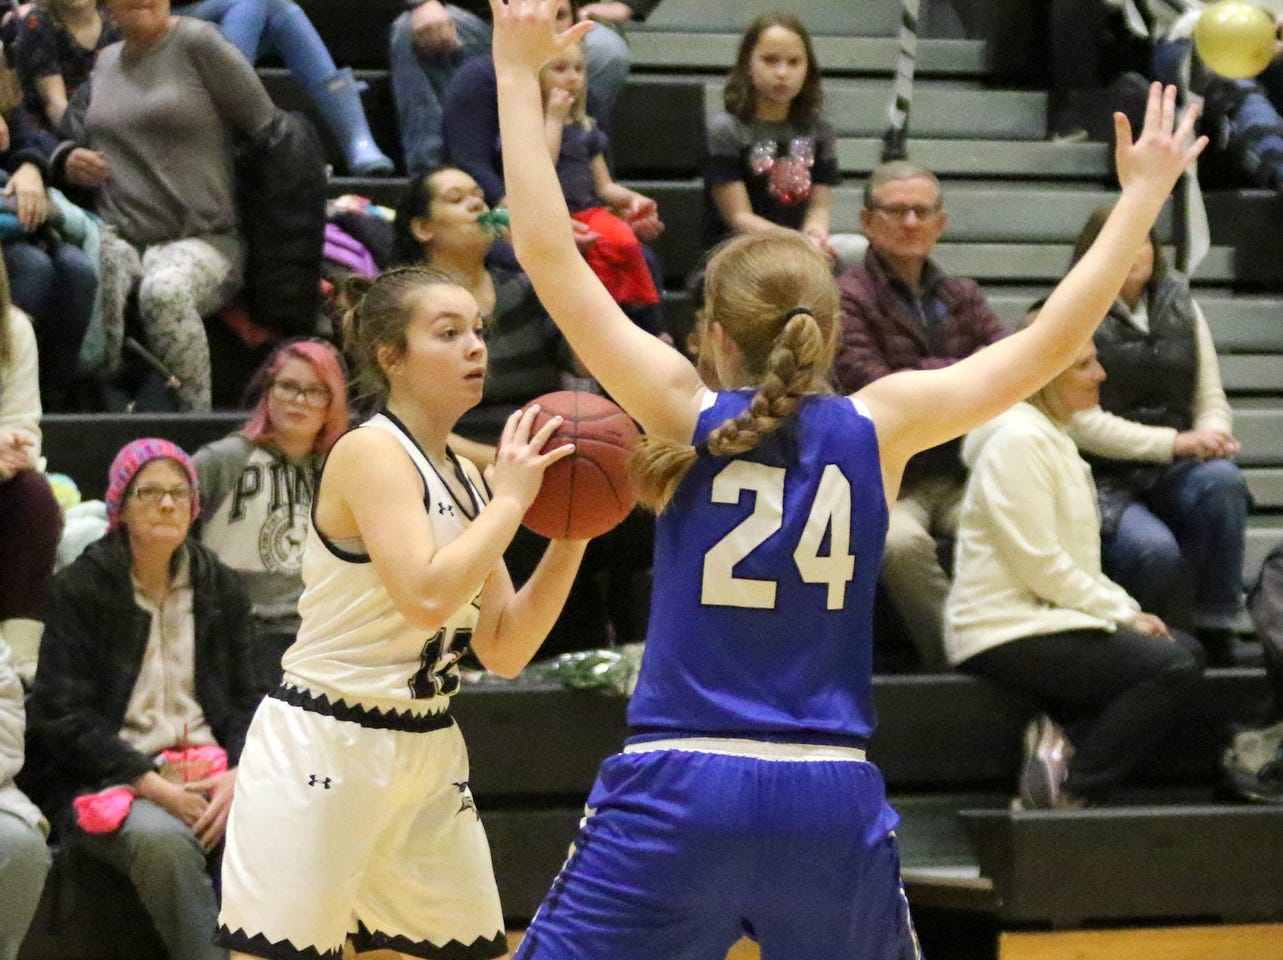 Action from the Horseheads girls basketball team's 50-24 victory over Corning on Feb. 6, 2019 at Corning-Painted Post High School.